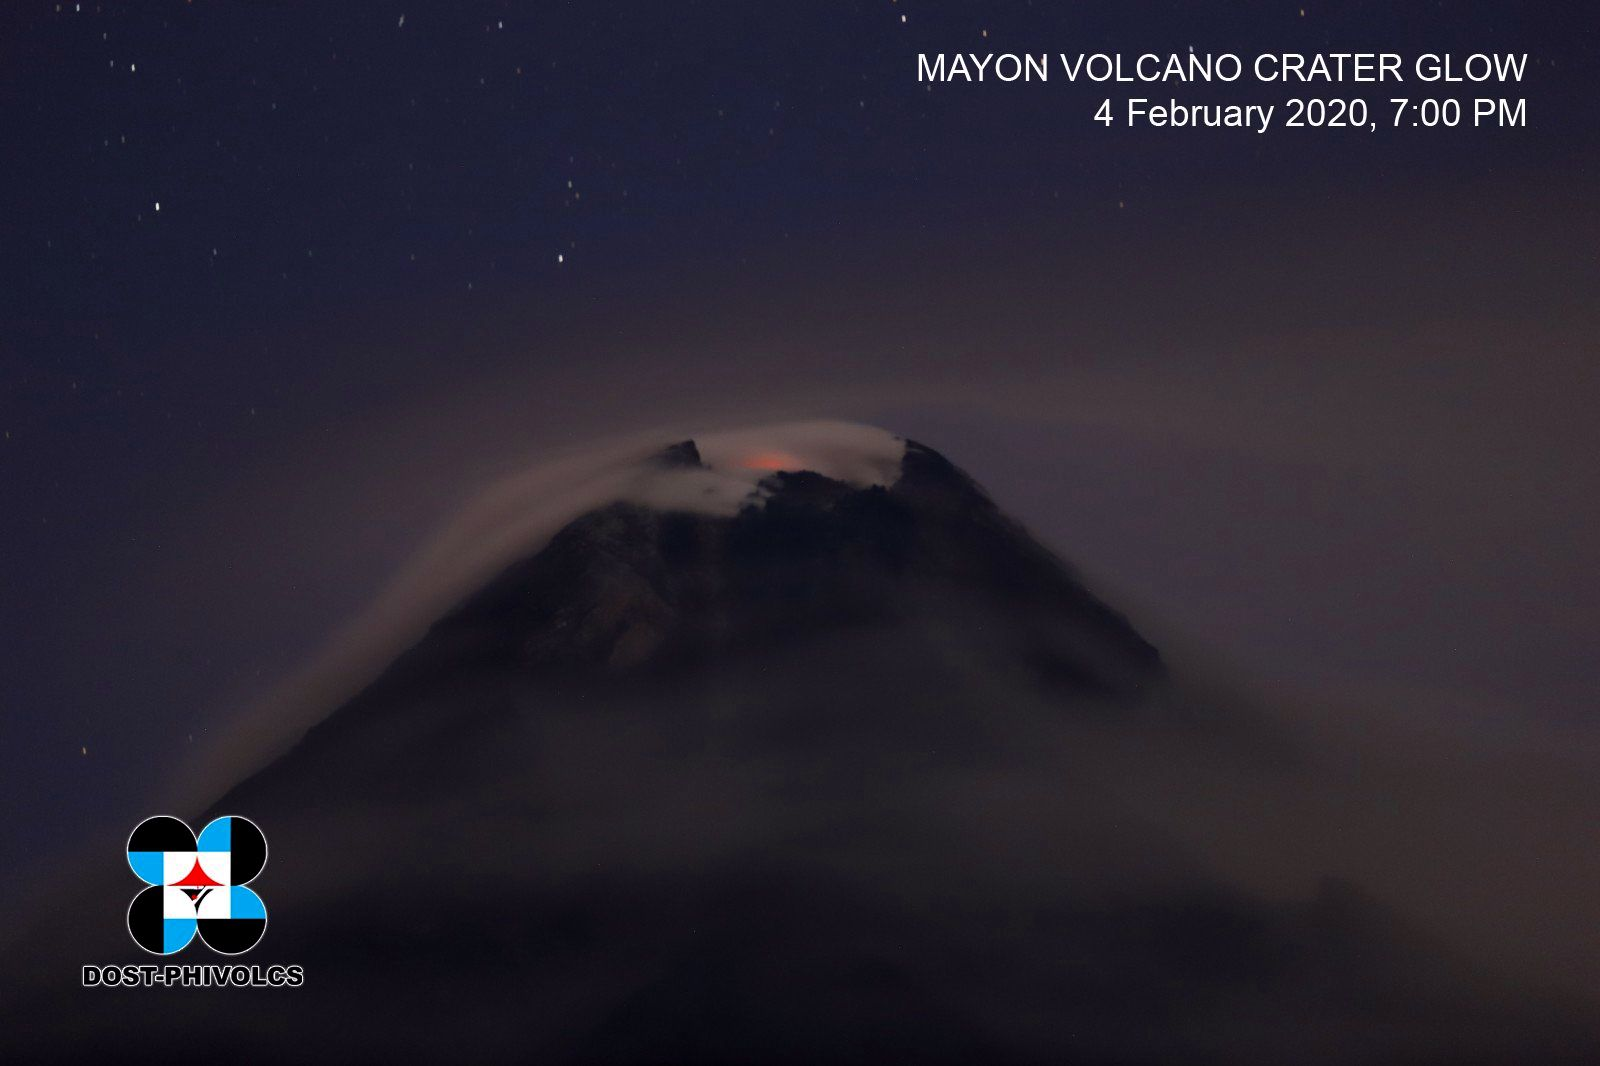 Mayon - incandescence au cratère sommital - photo archives Dost-Phivolcs 04.02.2020 / 19h